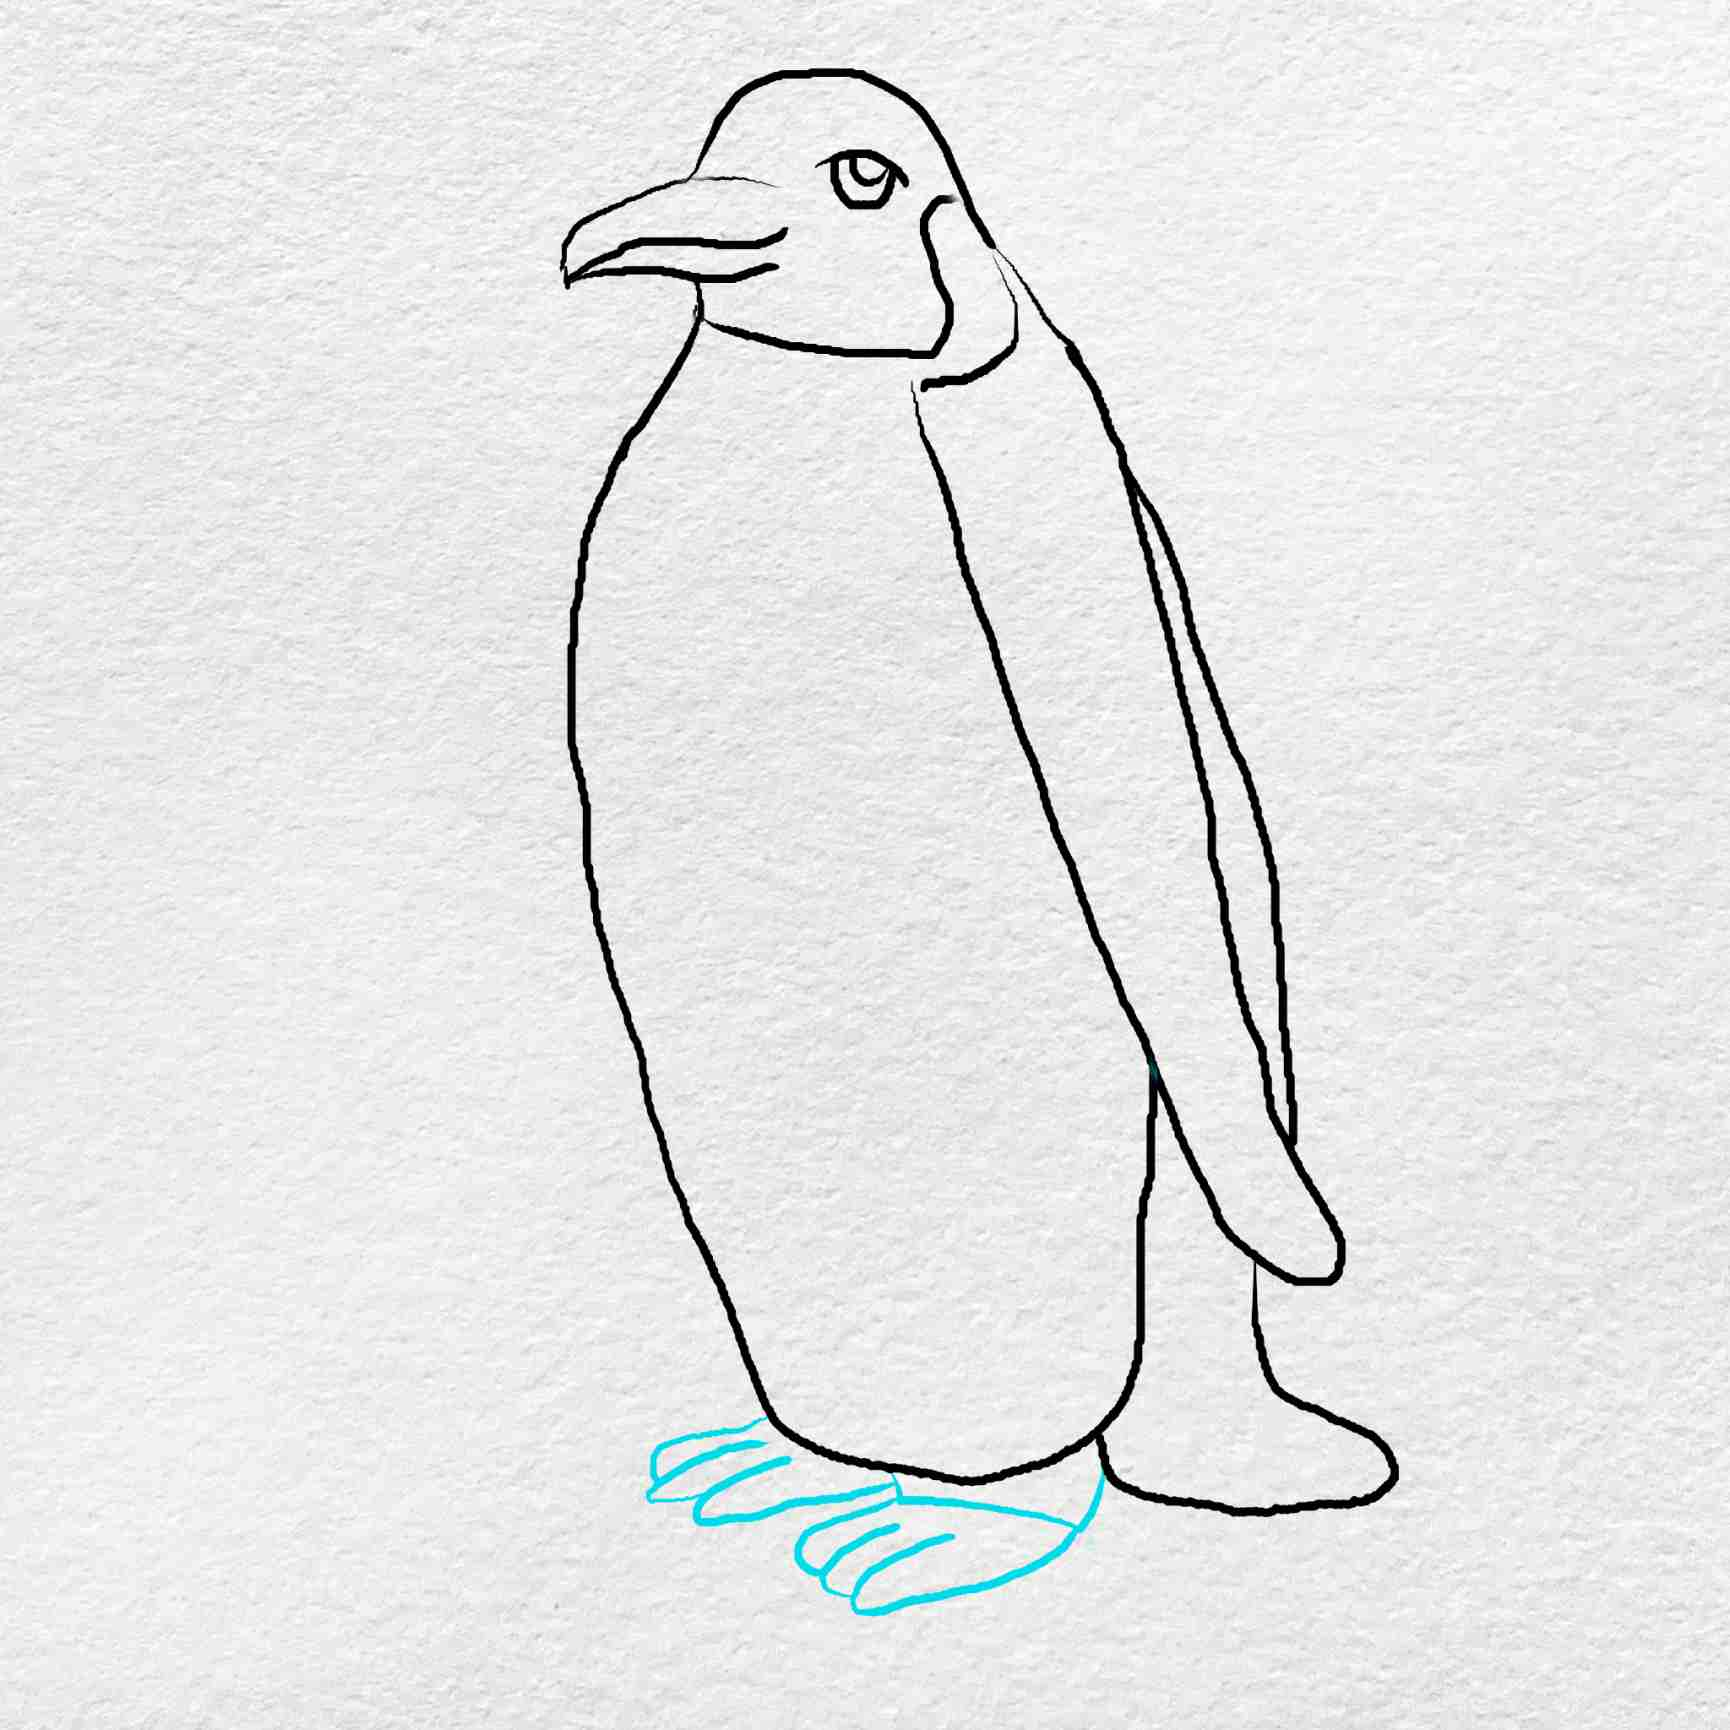 Emperor Penguin Drawing: Step 5